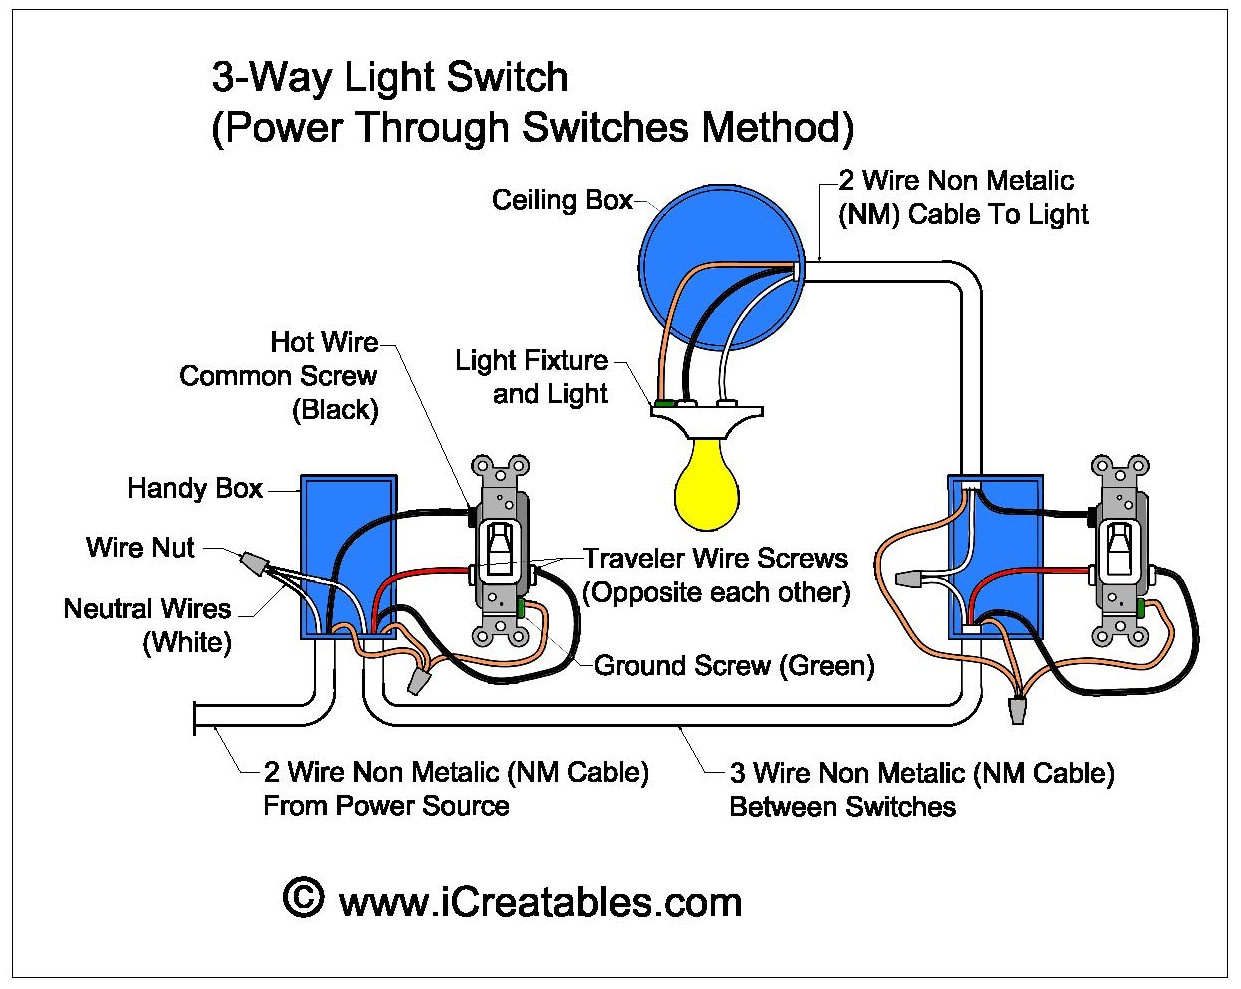 Shed wiring diagrams circuit diagram symbols shed wiring diagrams images gallery cheapraybanclubmaster